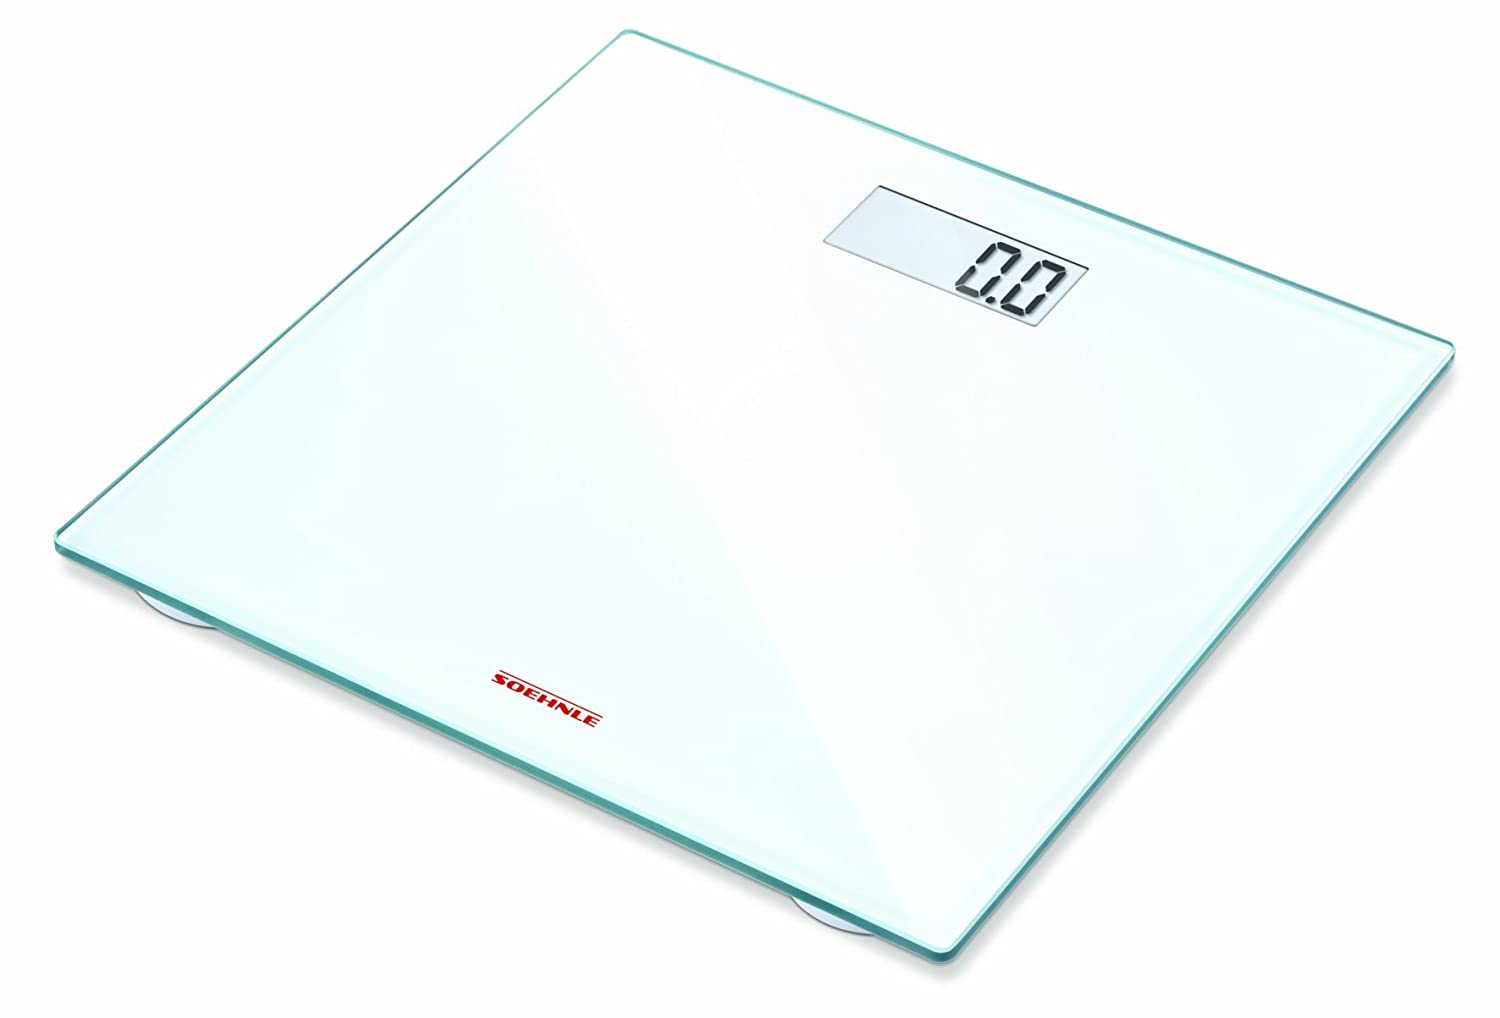 Soehnle Pino Precision Digital Bathroom Scale, 63747, White: Amazon.es: Salud y cuidado personal